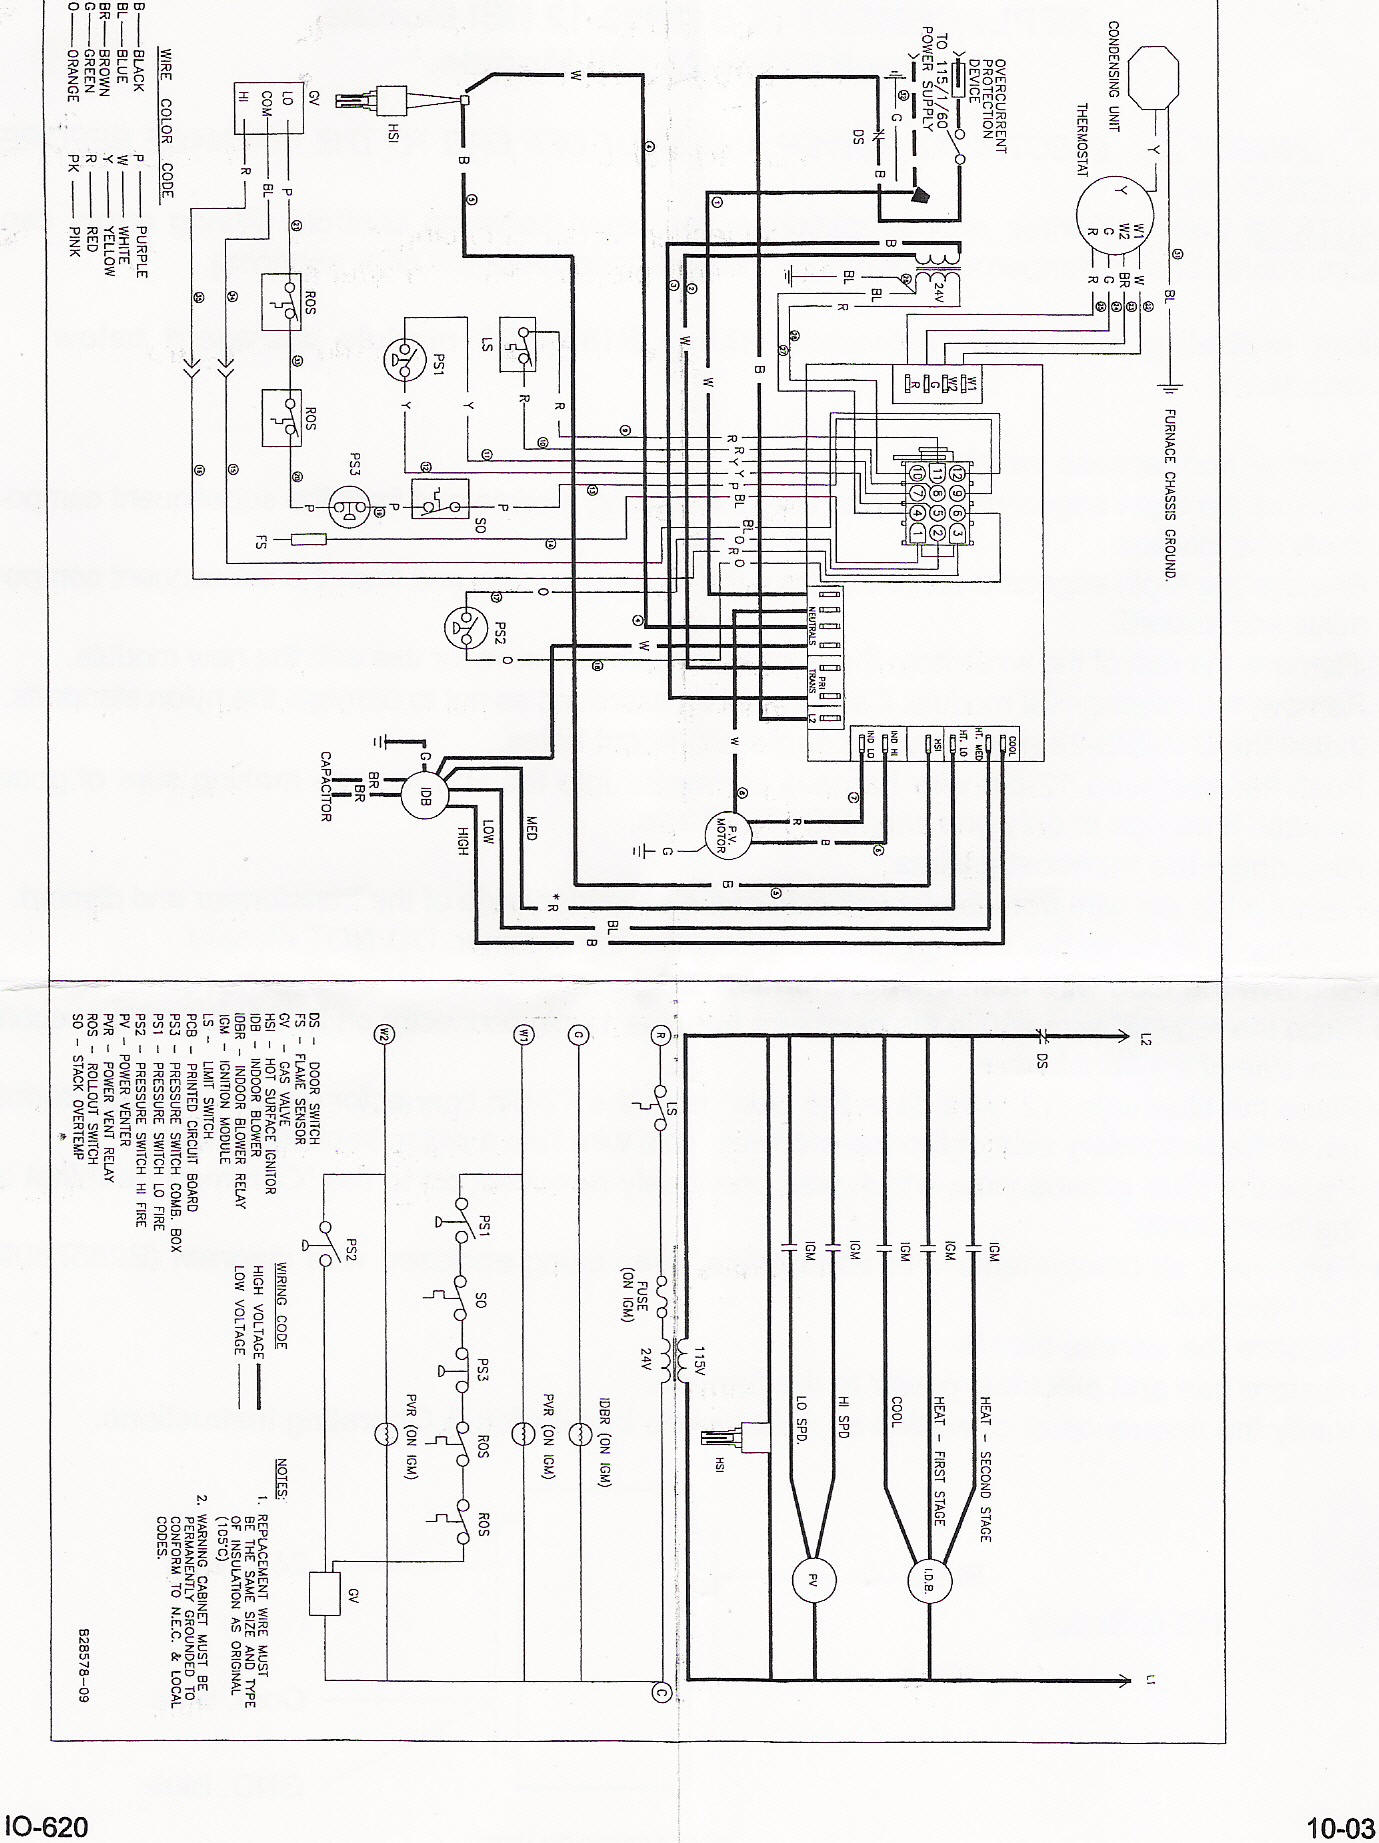 goodma2 instr goodman control board b18099 23 instructions fenwal ignition module wiring diagram at nearapp.co